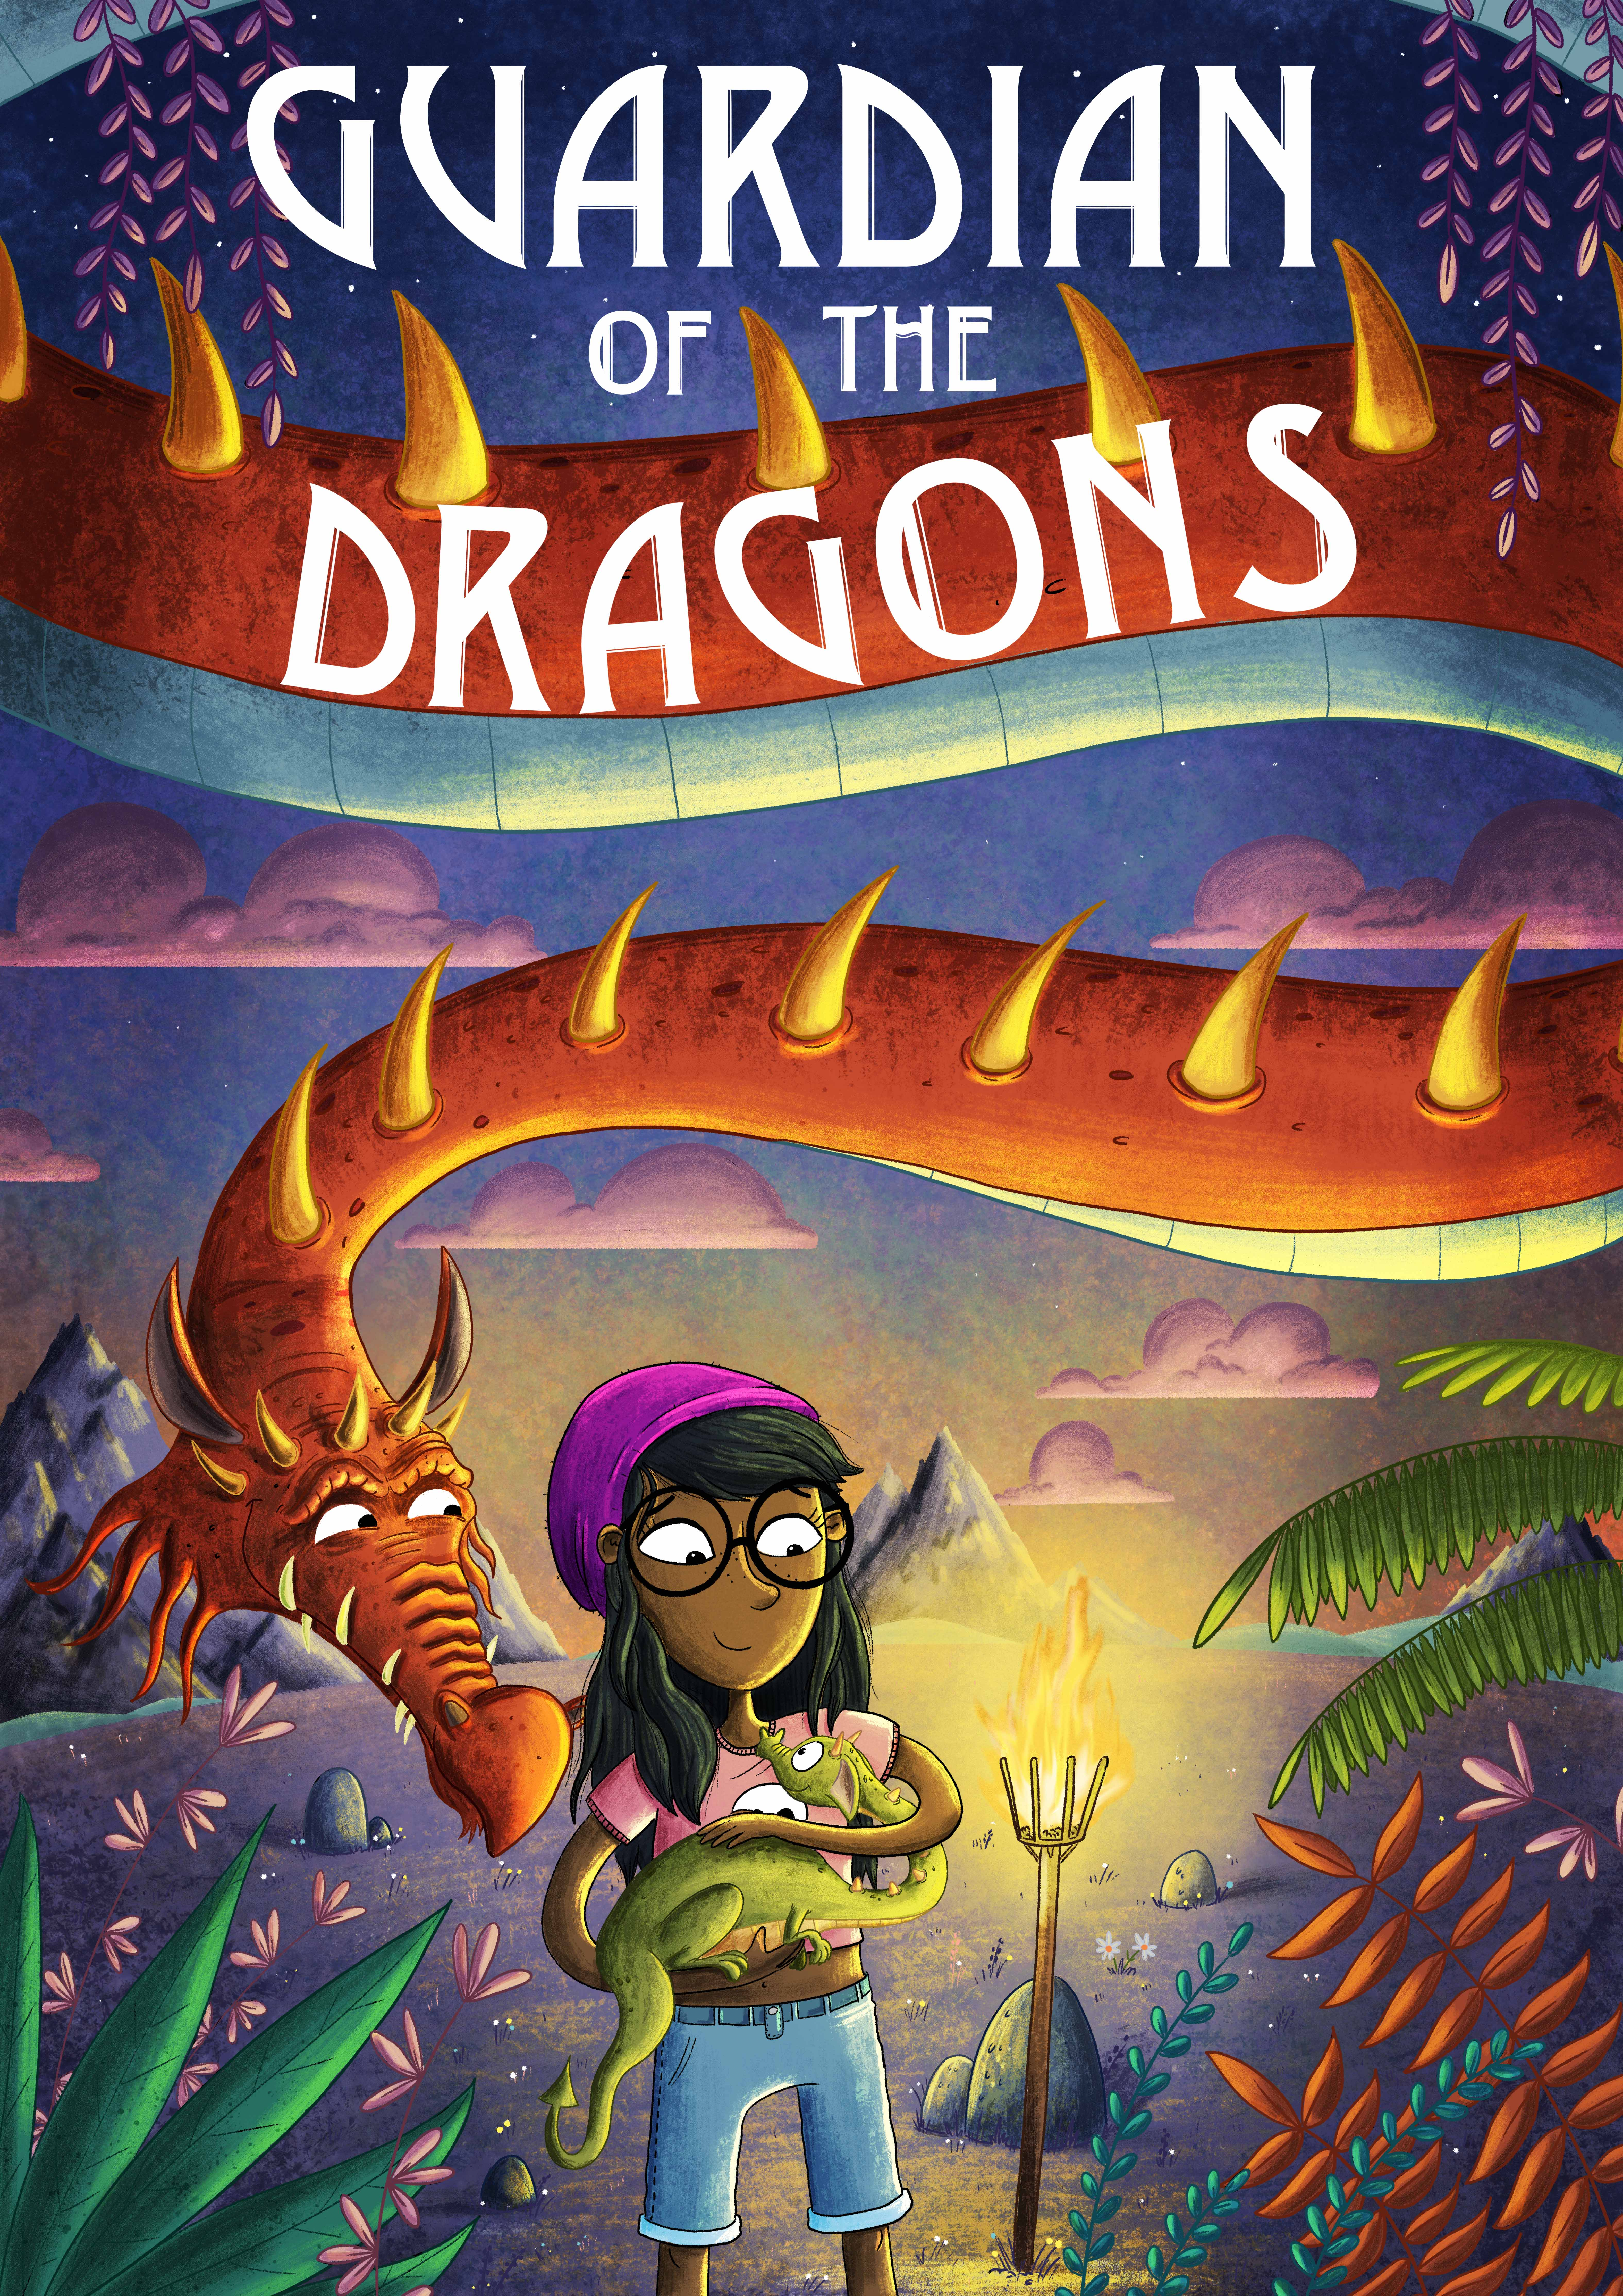 Dragon chapter book cover